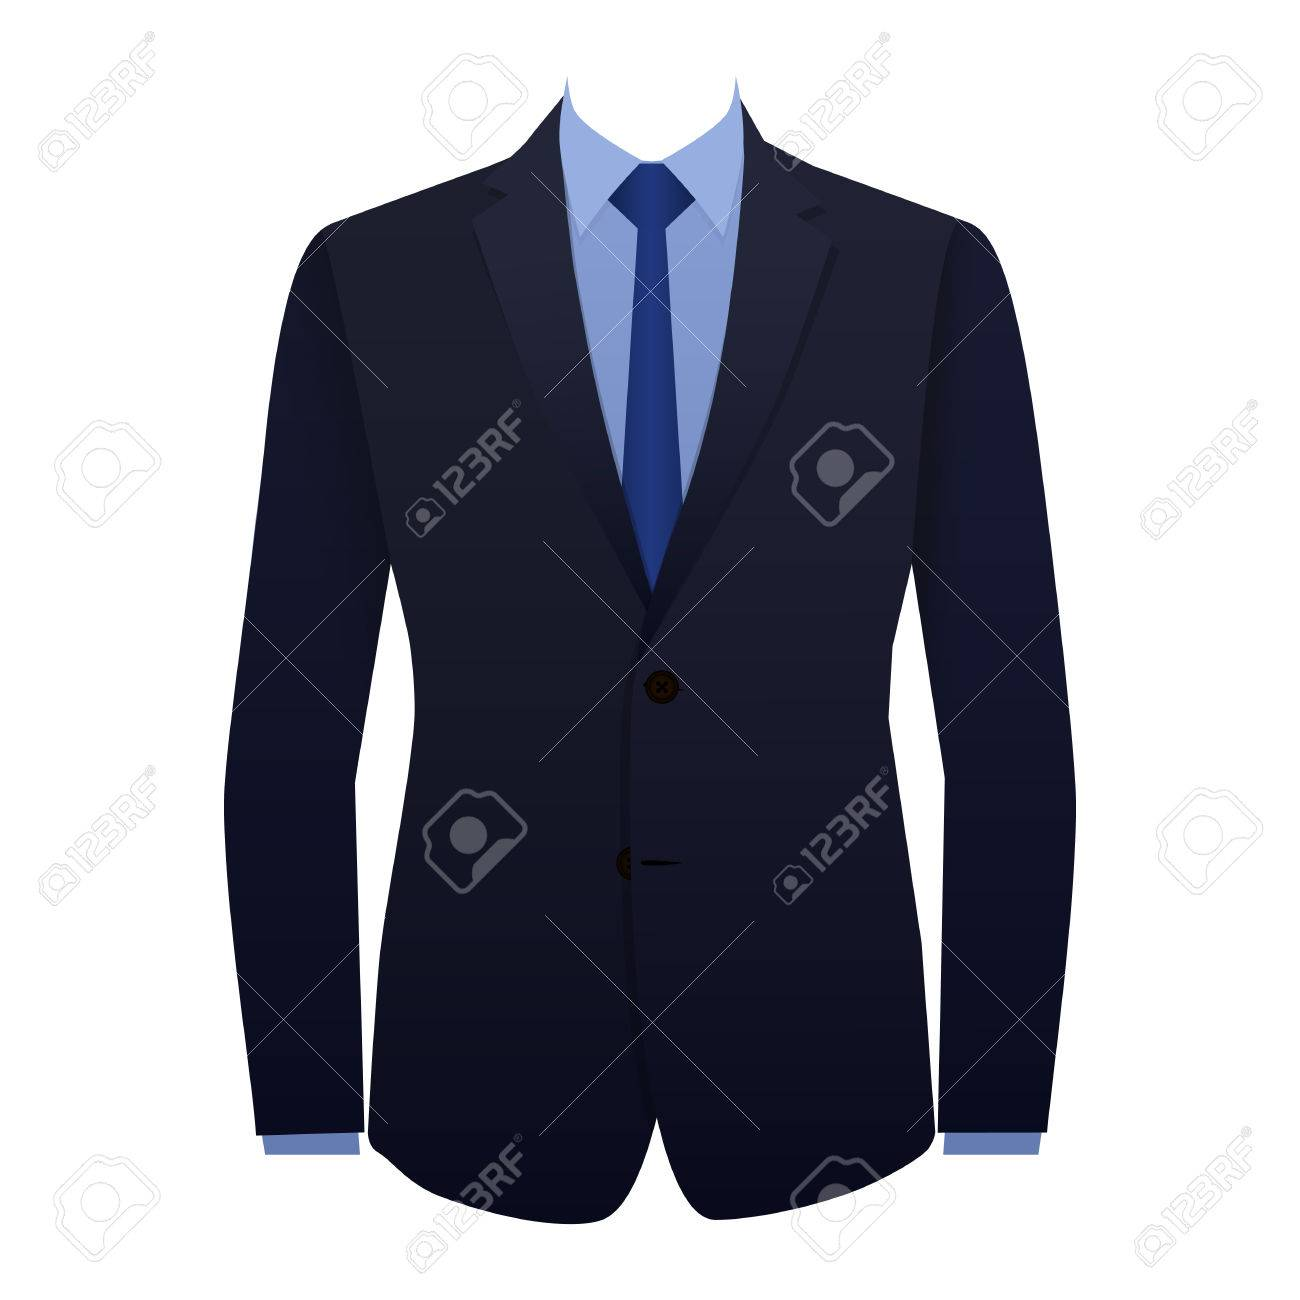 Blue business suit with a tie - 43928554